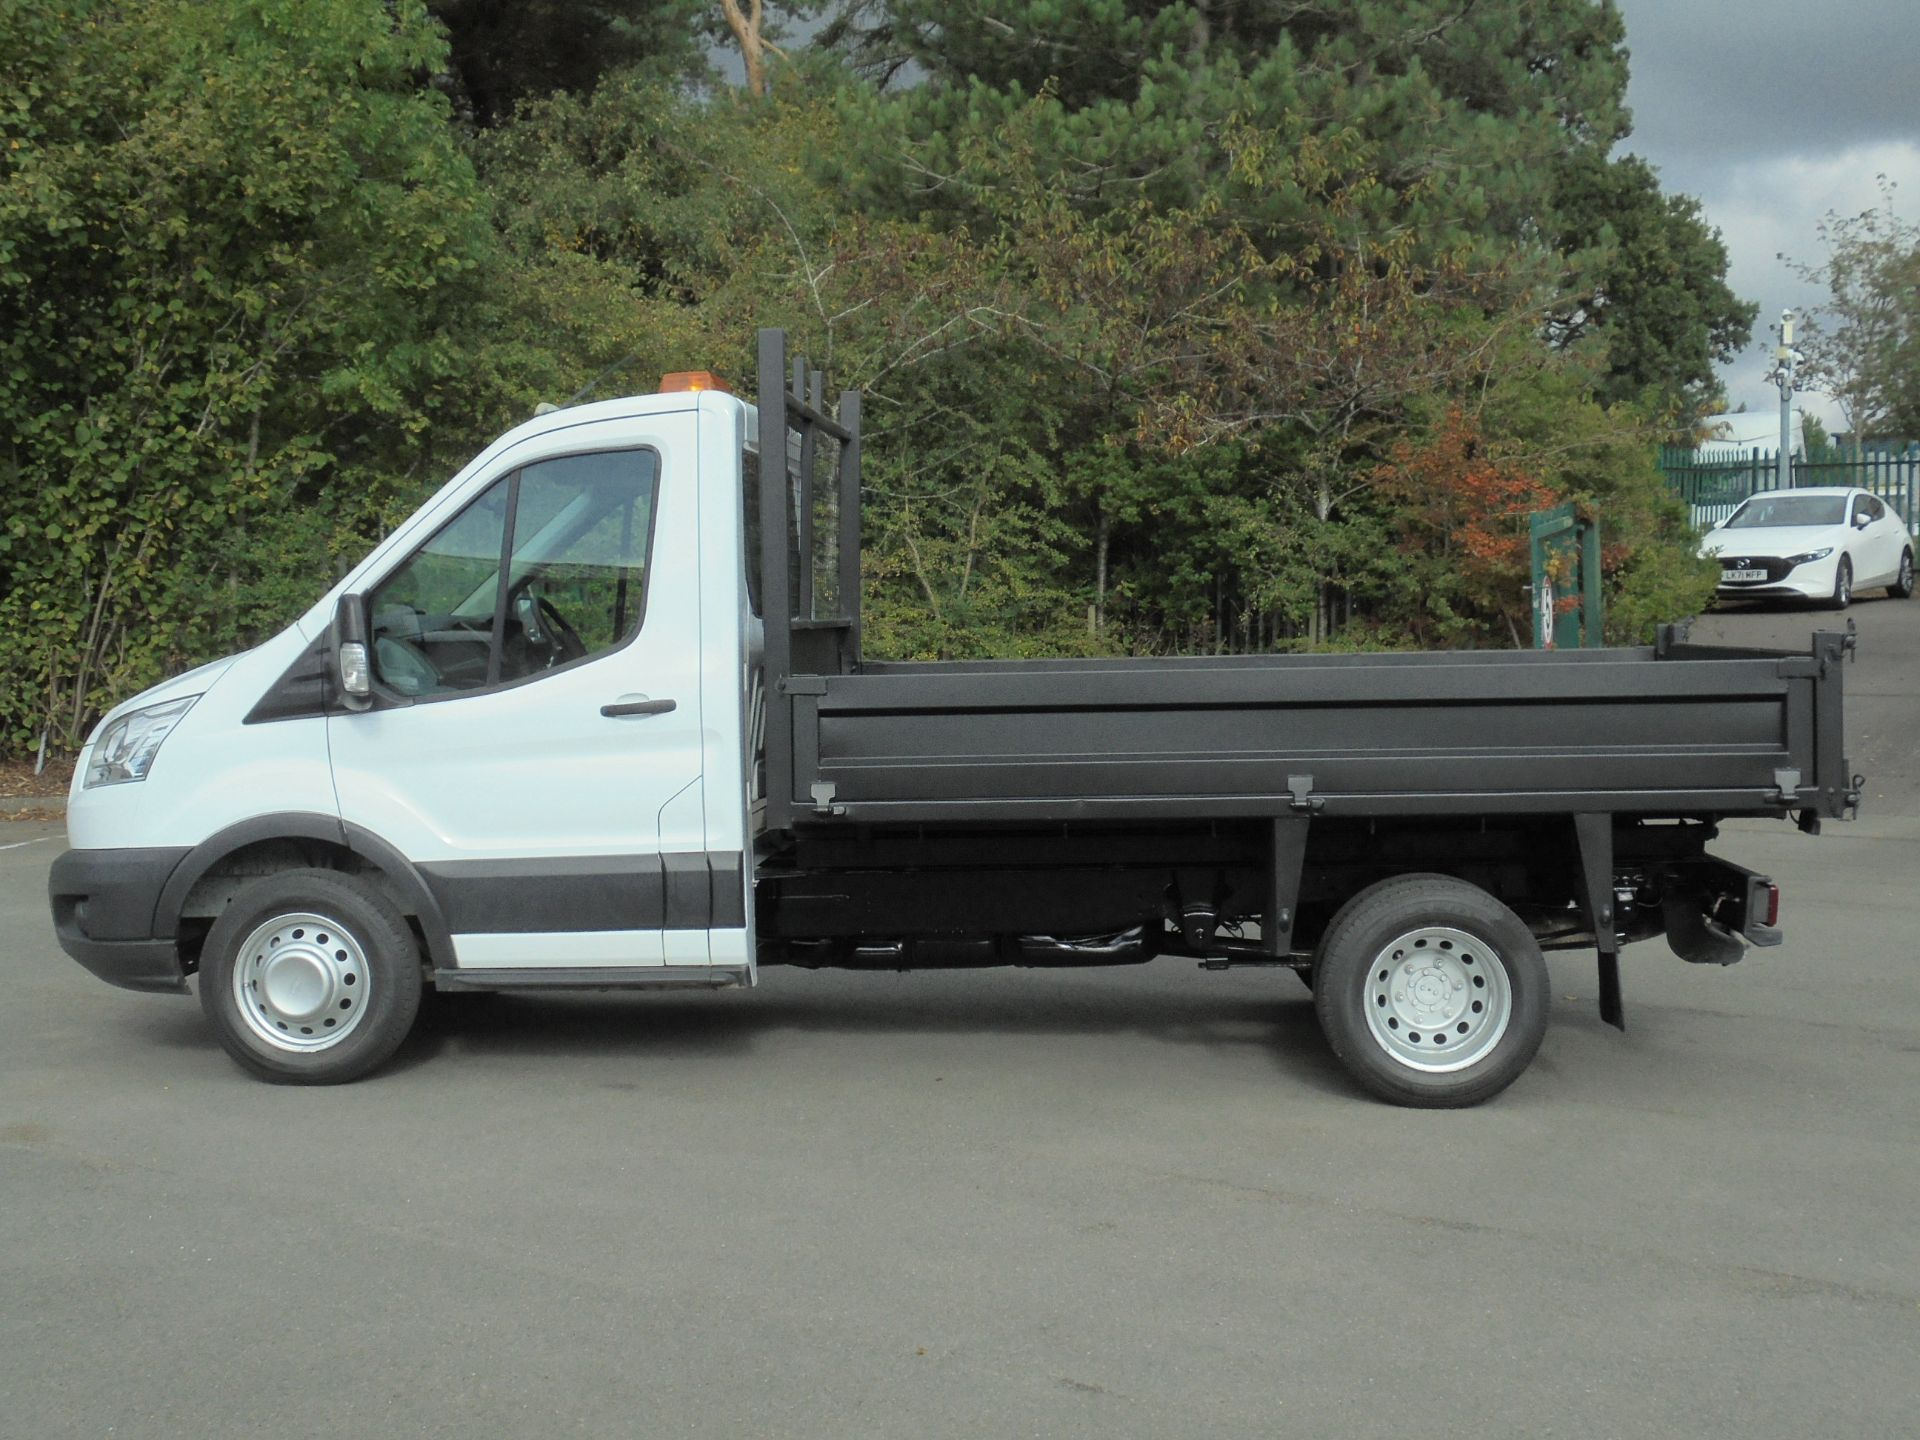 2015 Ford Transit 2.2 Tdci 125Ps Chassis Cab Tipper (FP65DJZ) Image 4